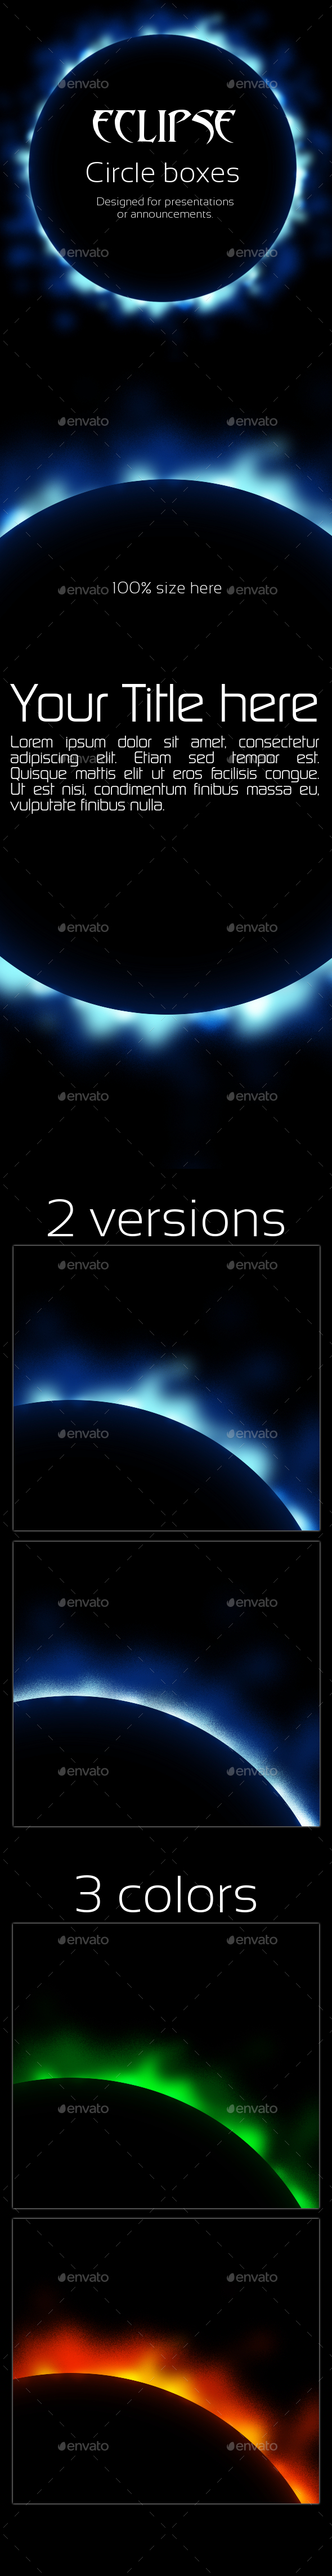 GraphicRiver Eclipse Circle Boxes 10807128